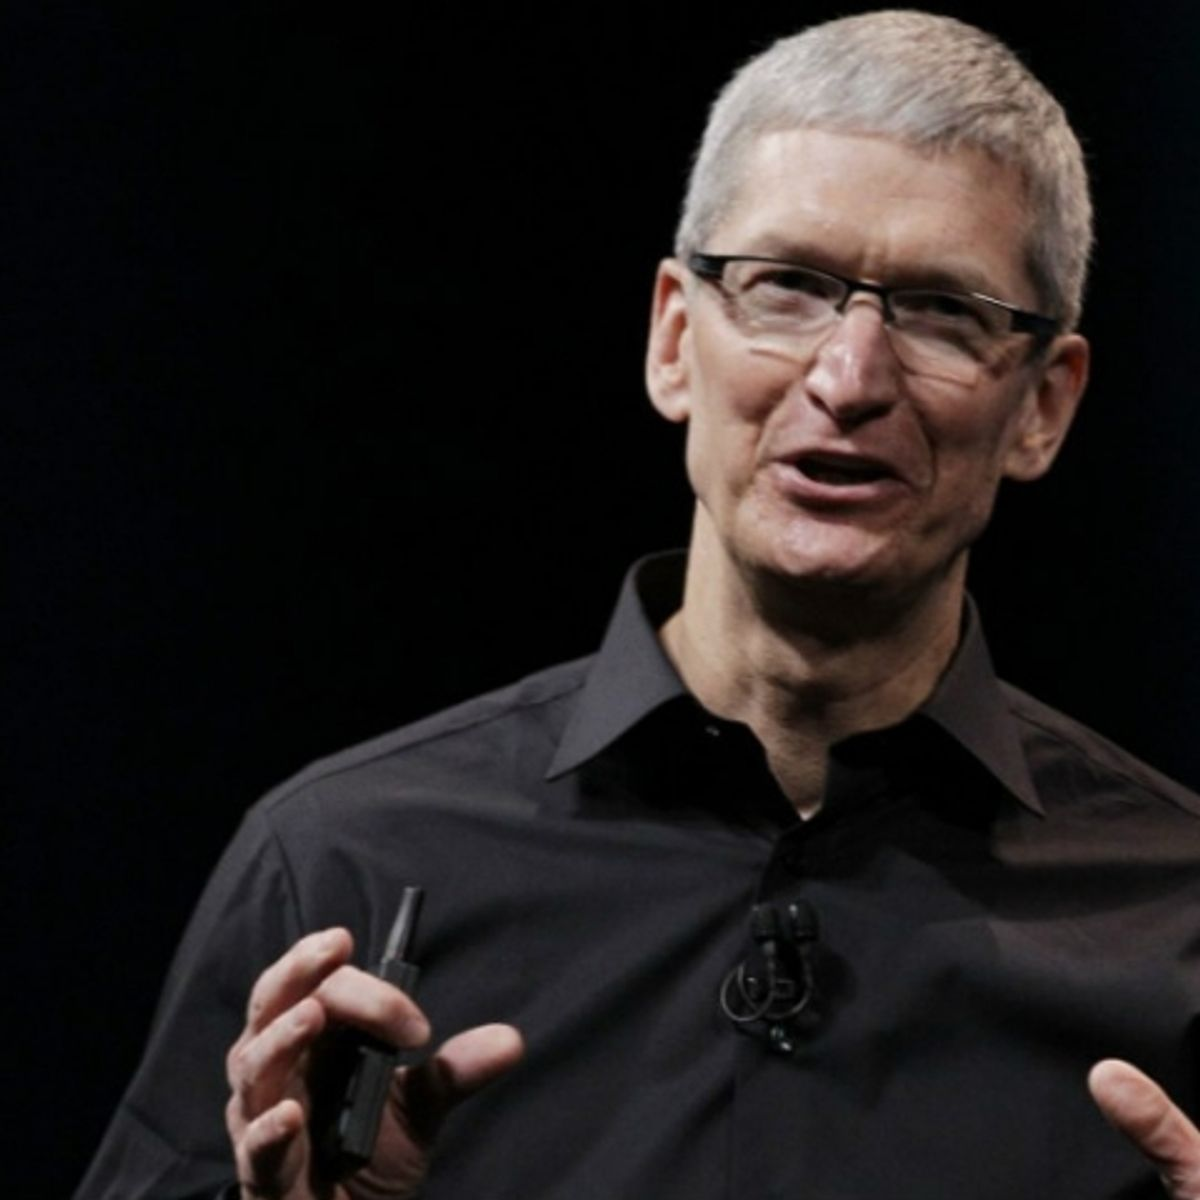 Apple to up the ante in Augmented Reality, reveals CEO Tim Cook